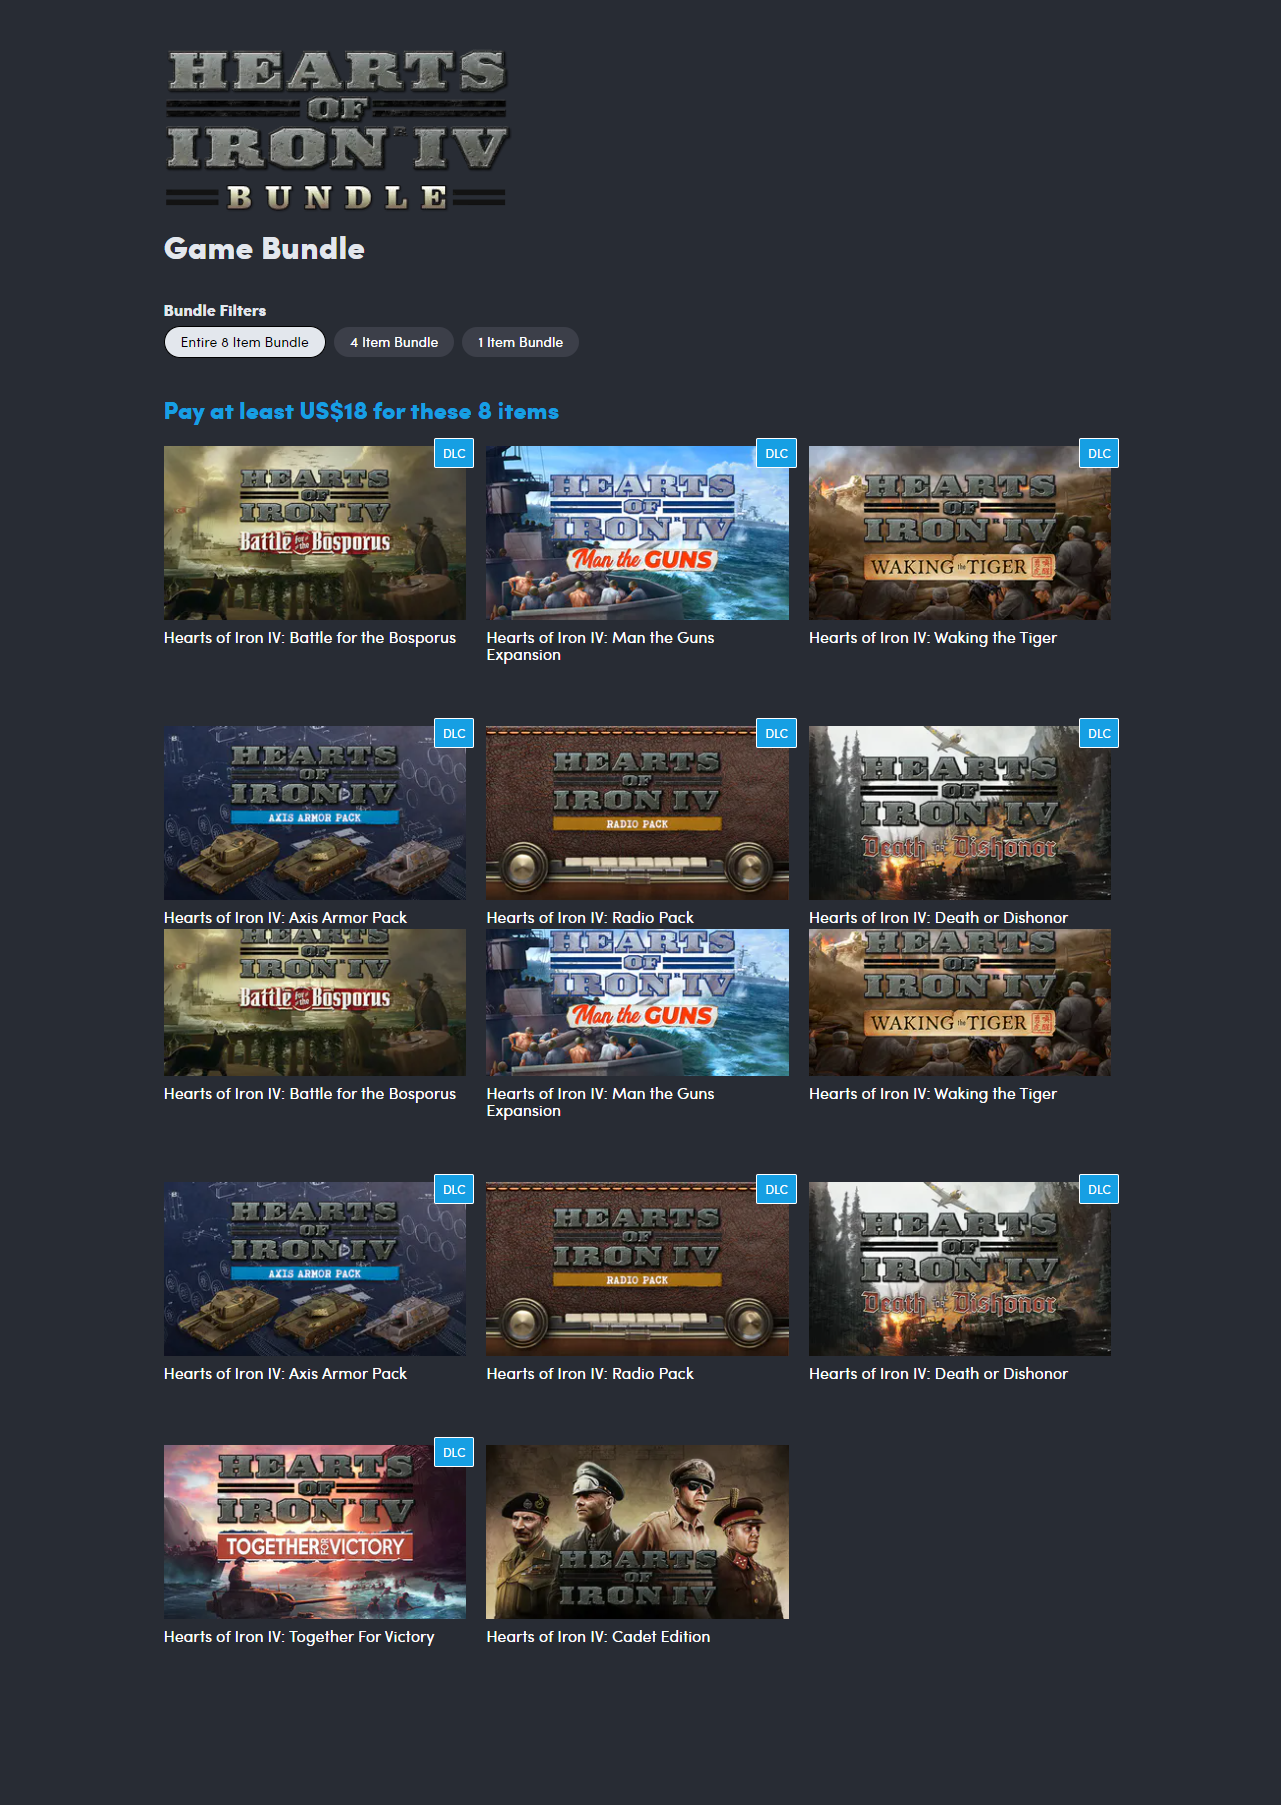 FireShot Capture 002 - Humble Hearts of Iron Bundle (pay what you want and help charity)_ - www.humblebundle.com.png